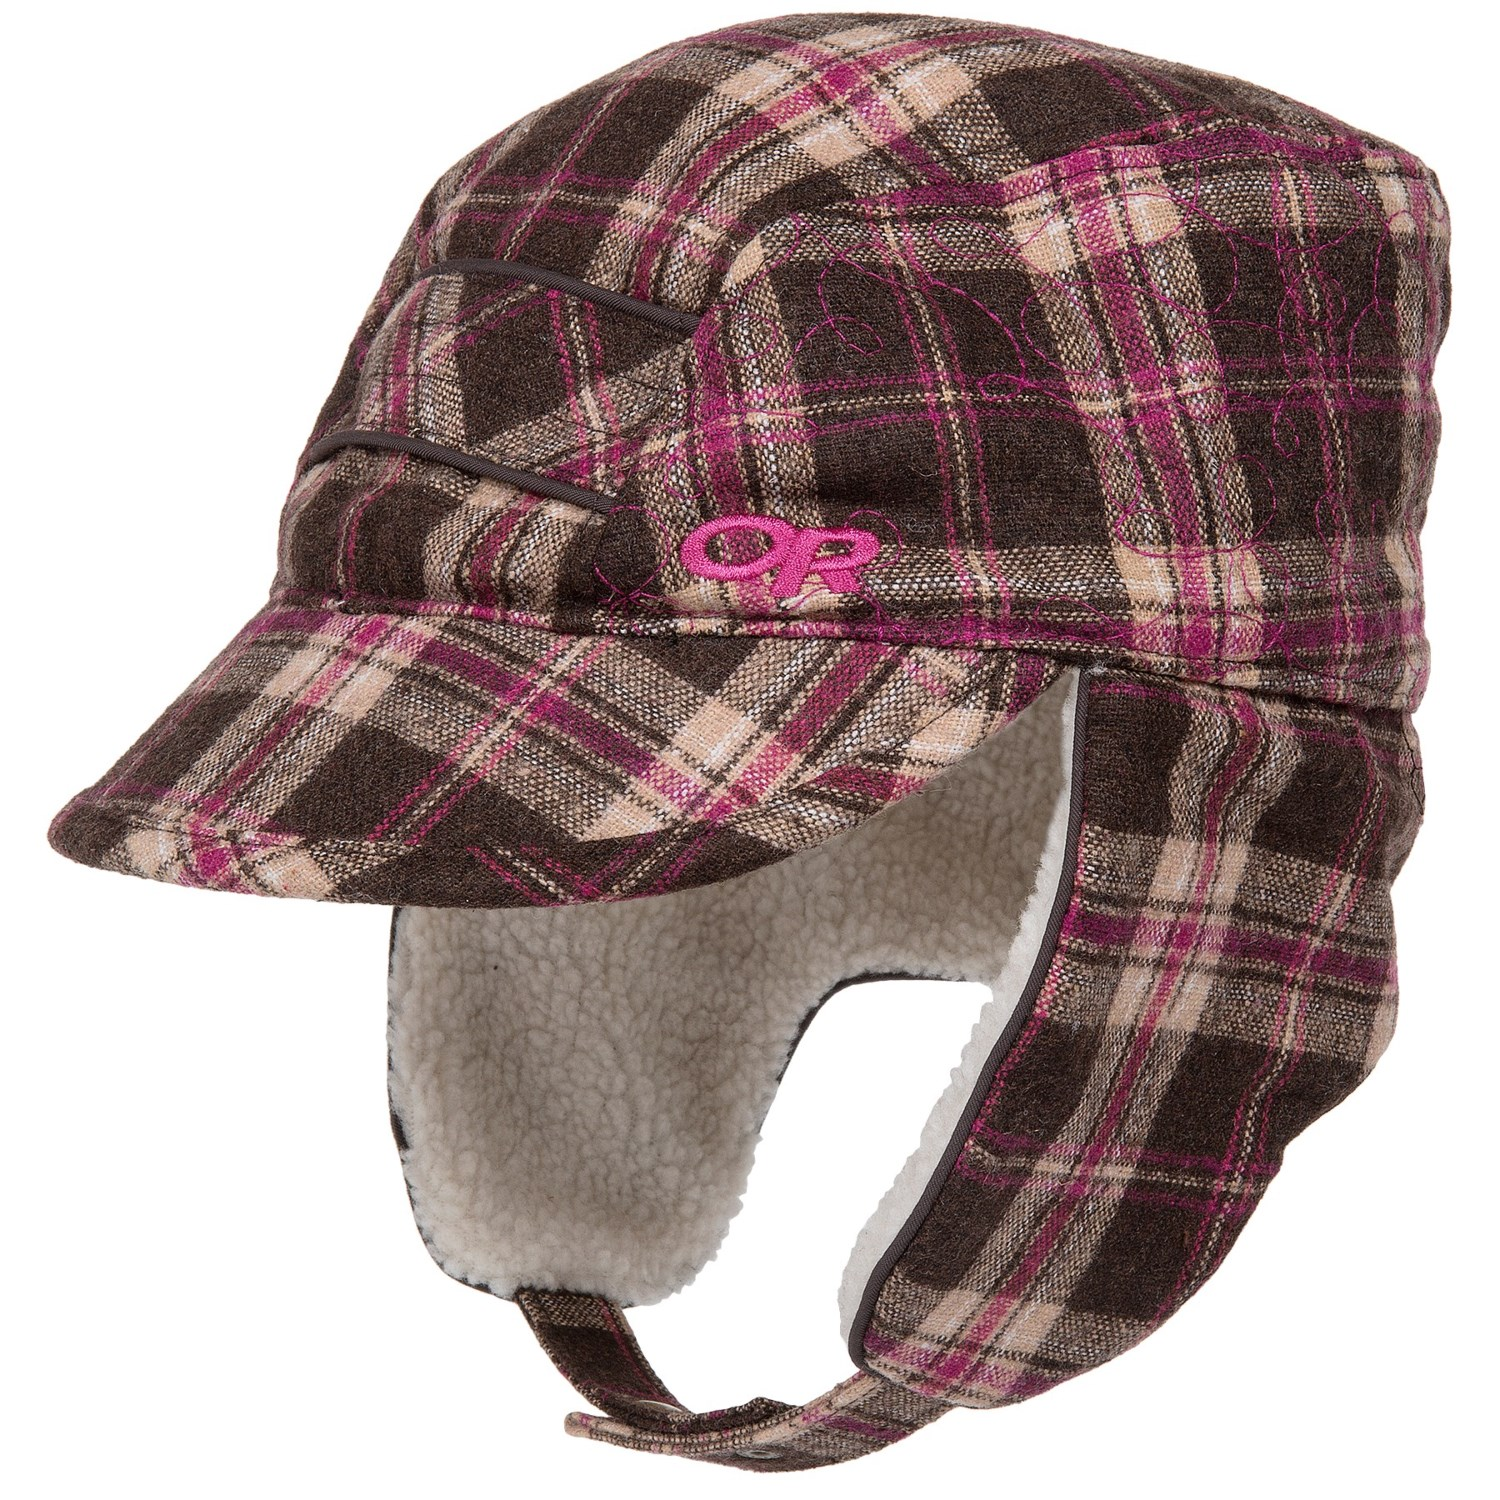 7eb56bb457c95 Women s Trophy Trapper Hats Related Keywords   Suggestions - Women s ...